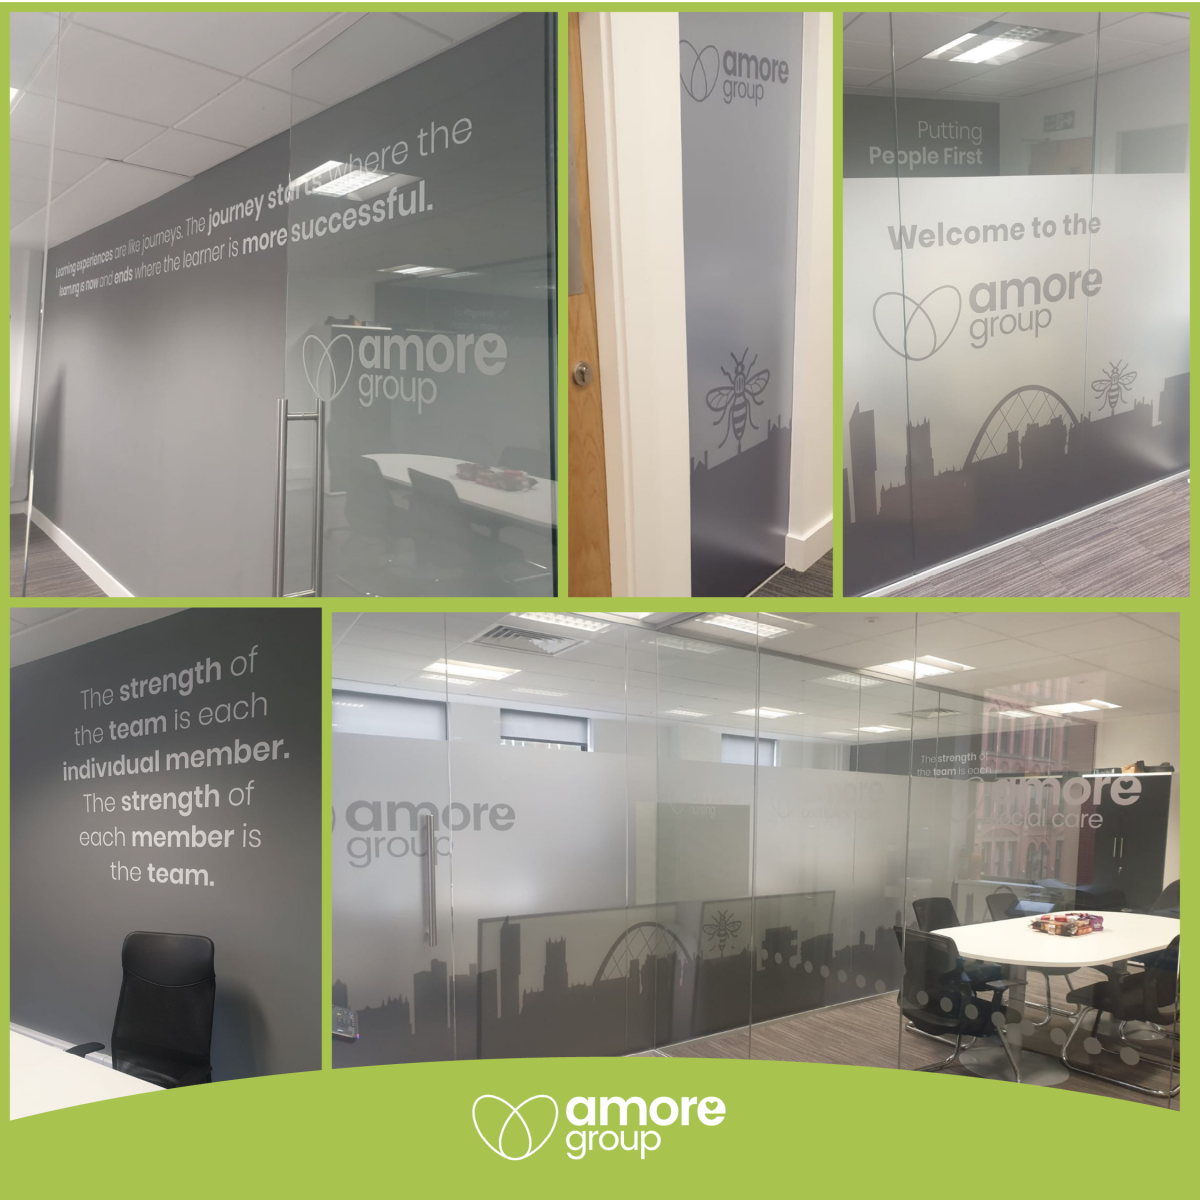 Take a look at our 'un-bee-lievable' new office branding!